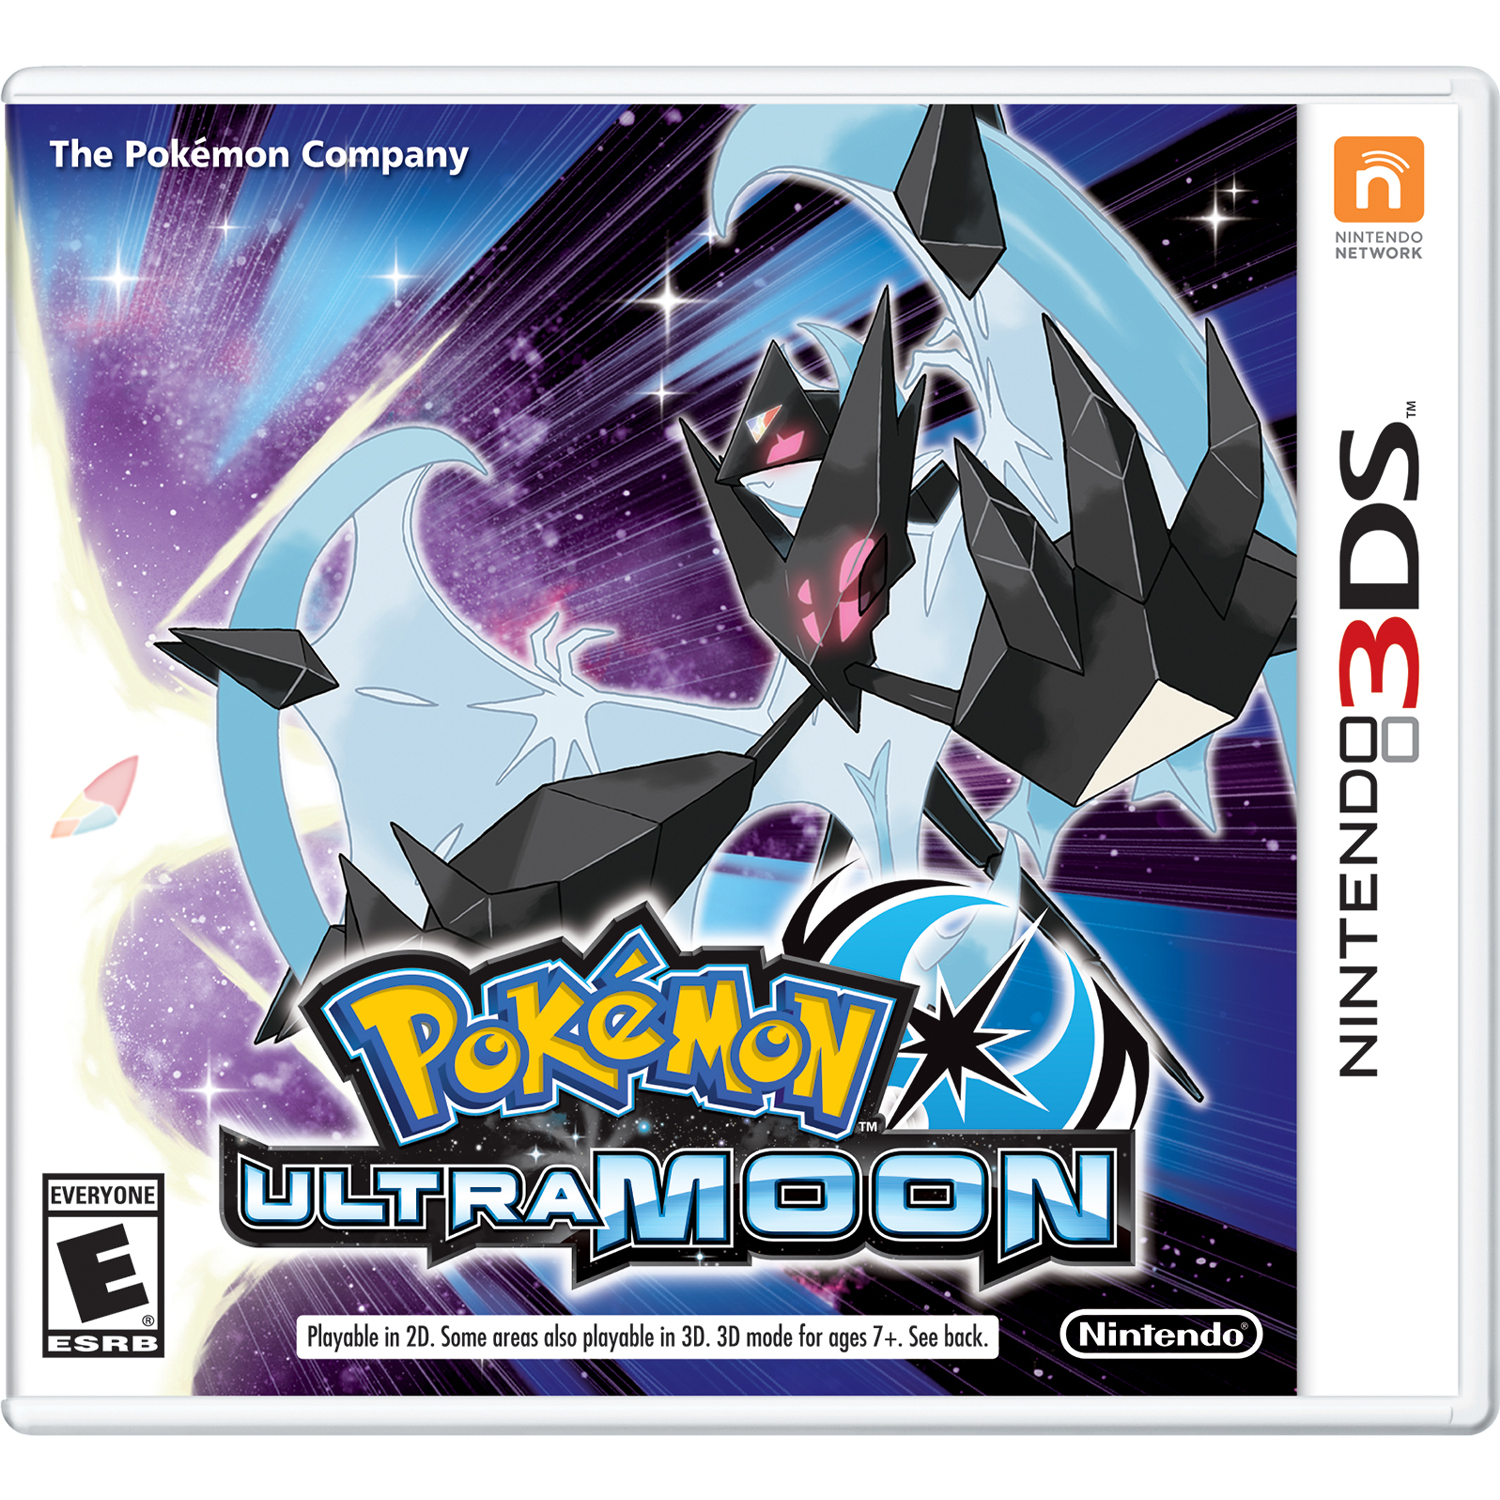 Pokemon Ultra Moon, Nintendo, Nintendo 3DS, 045496904579